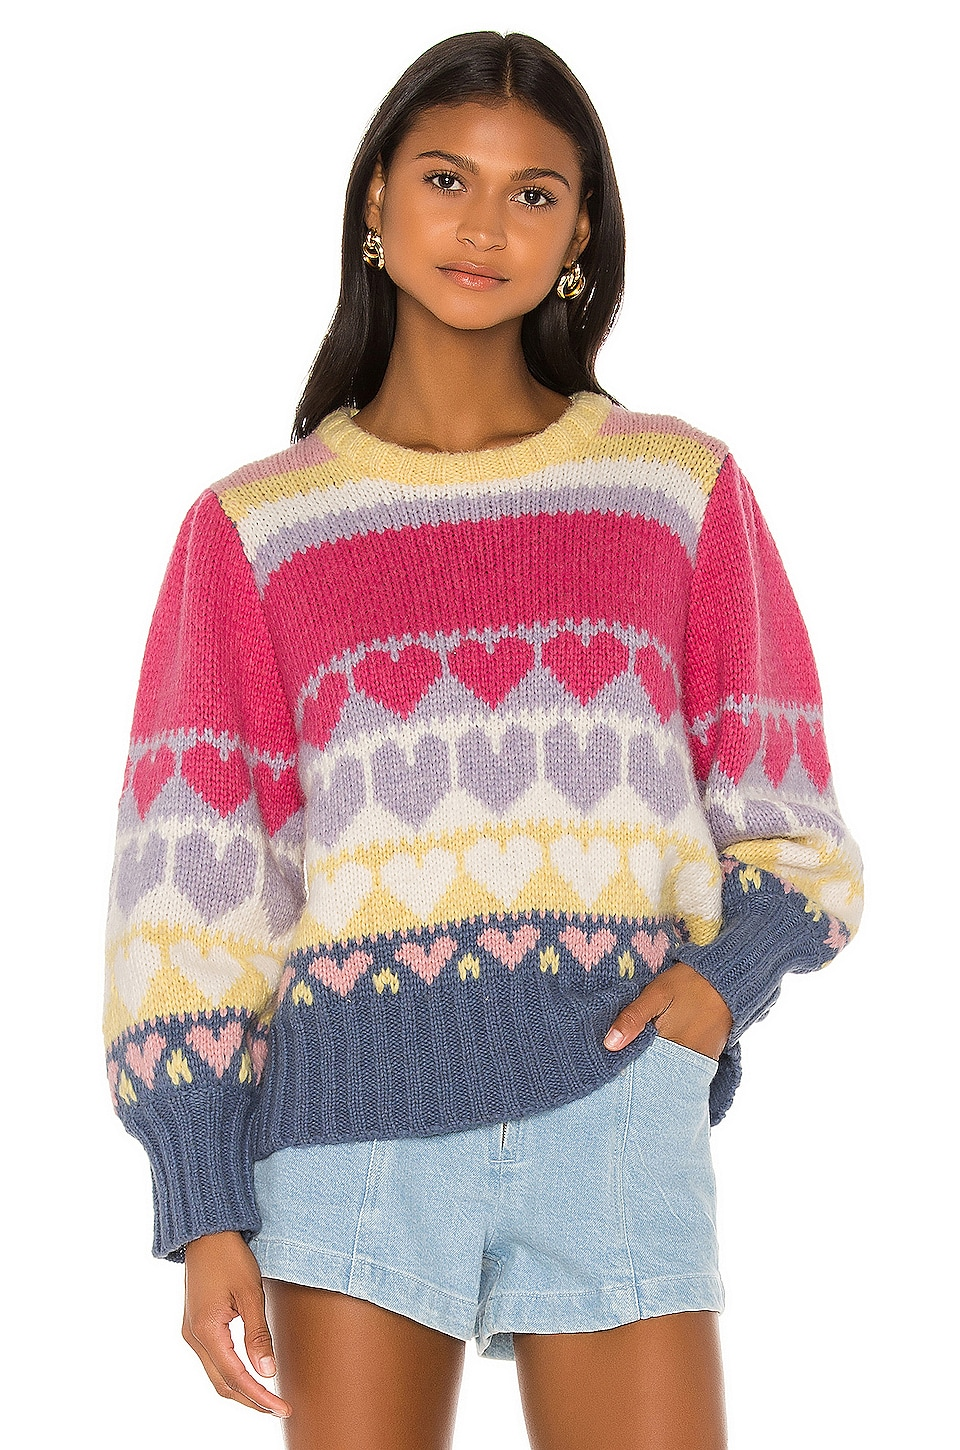 LoveShackFancy Shirelle Pullover in Pink Icing